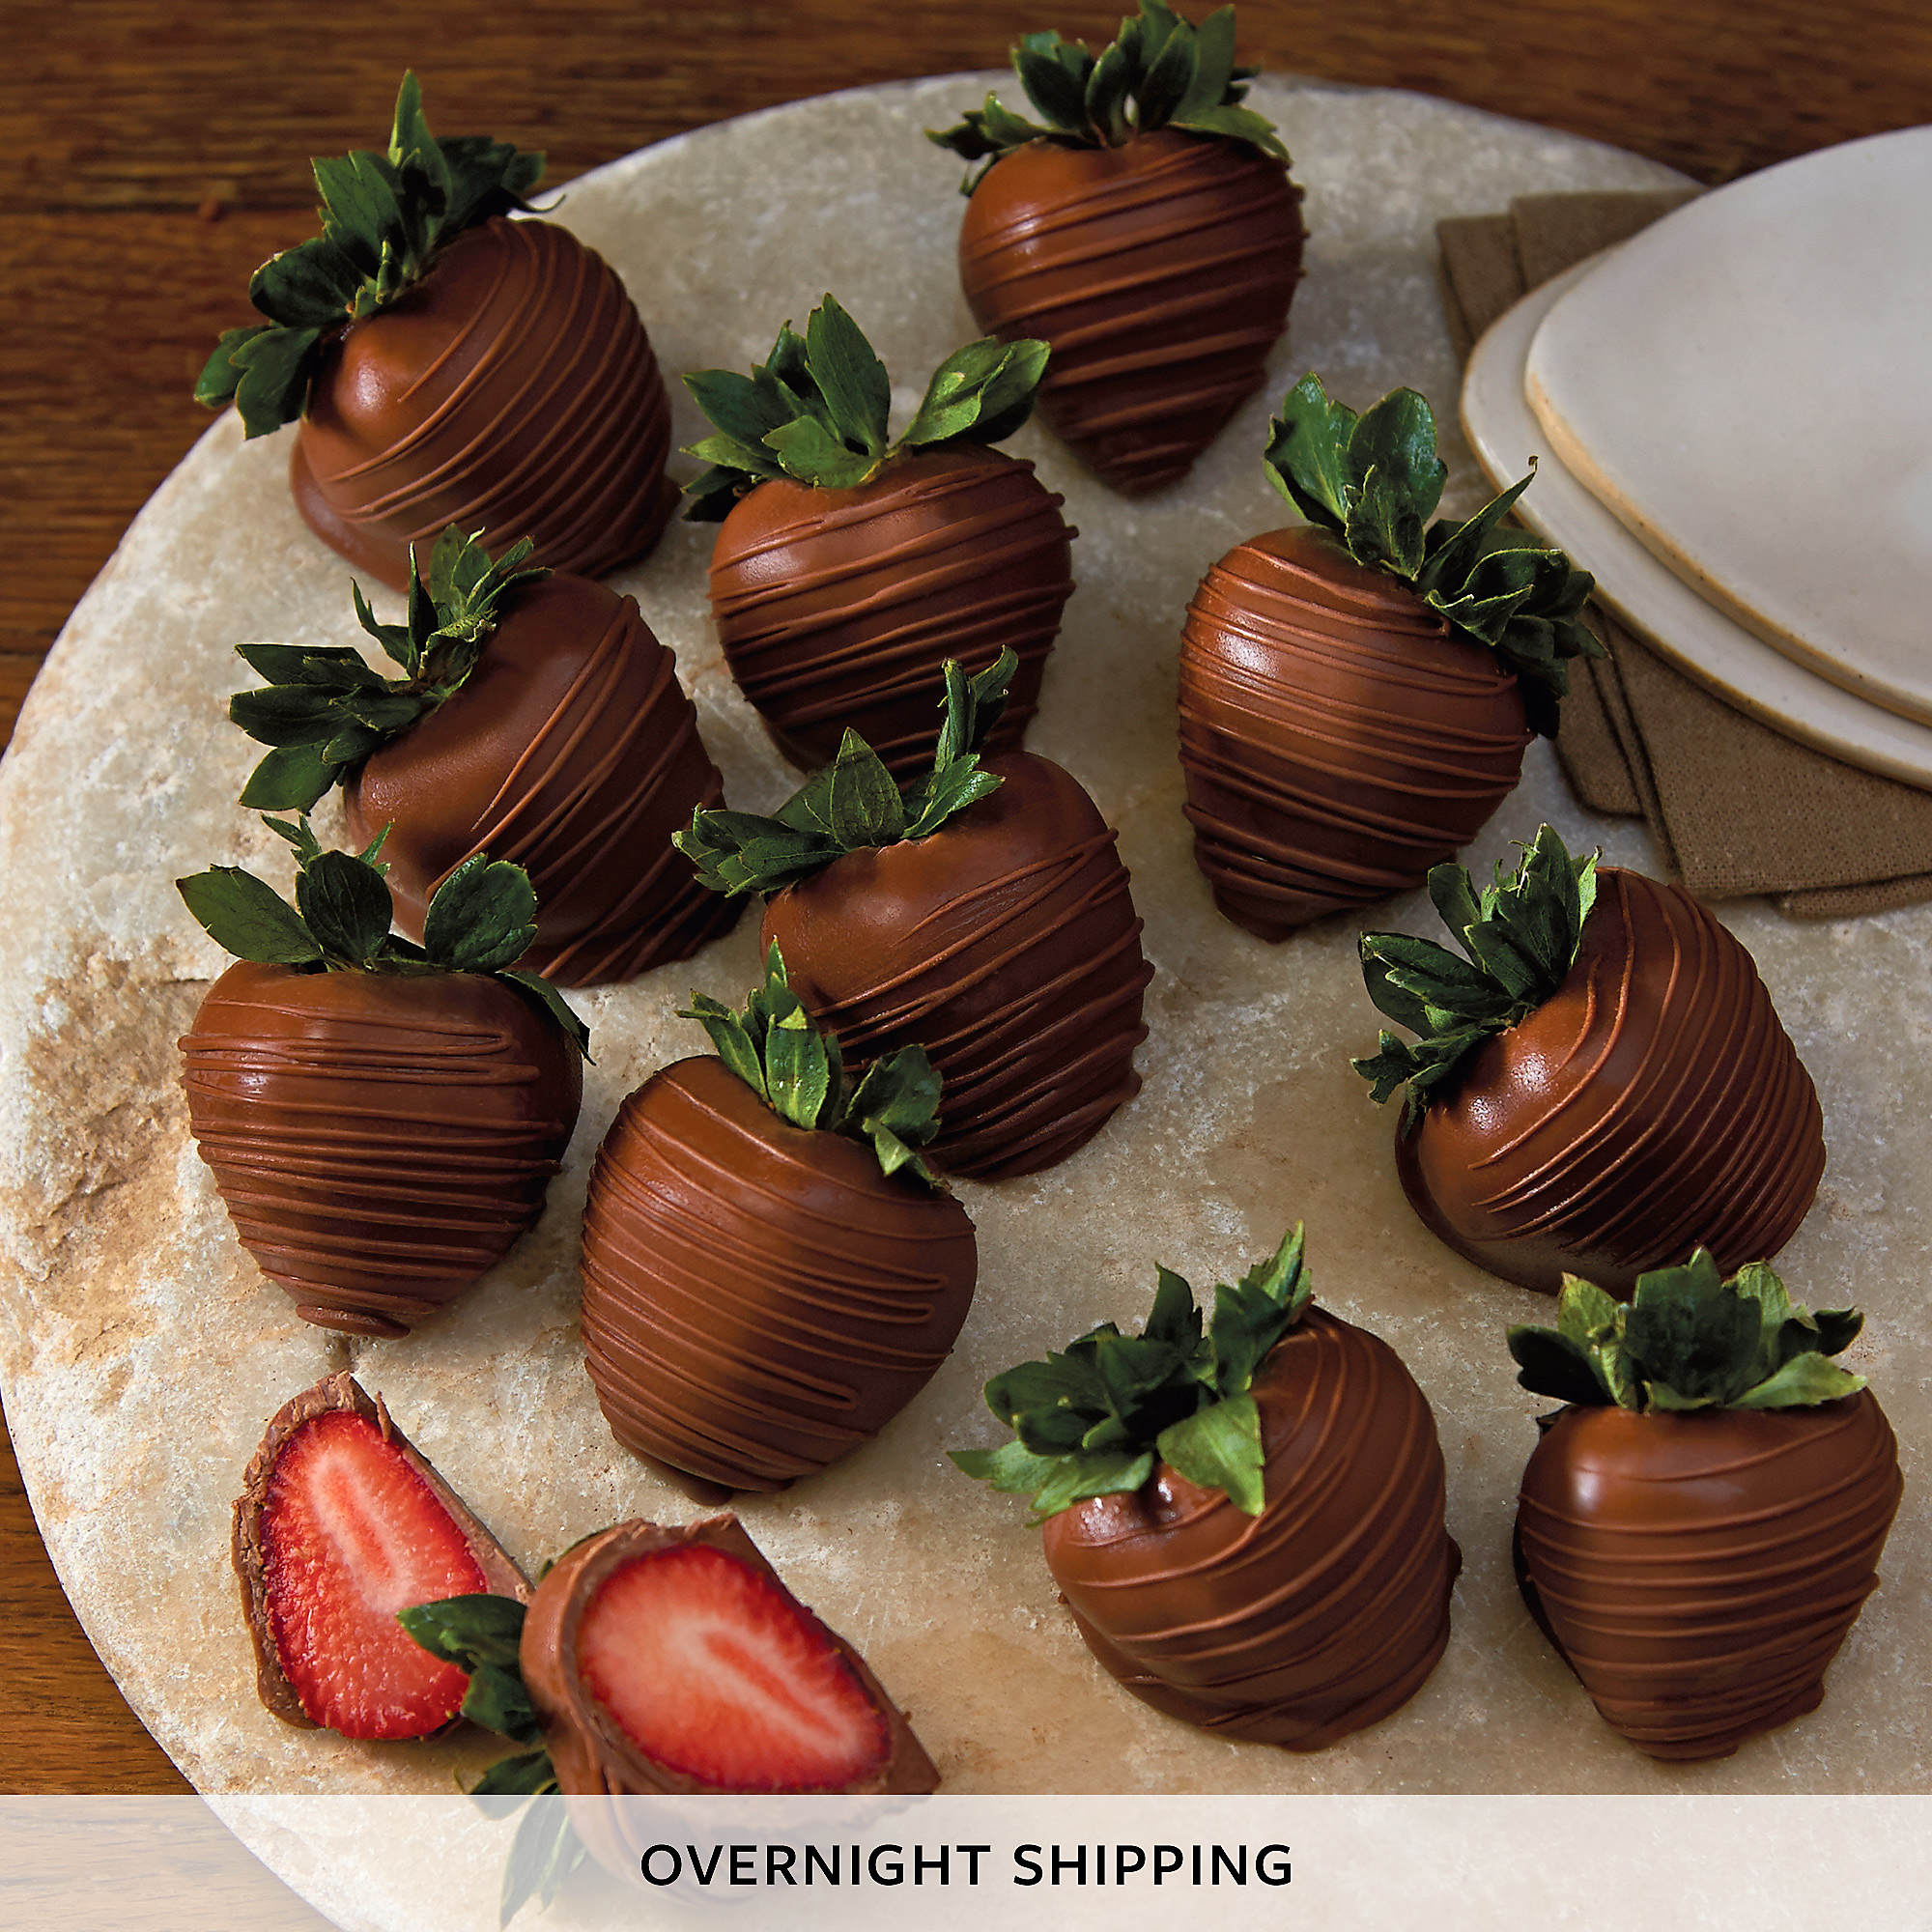 1530_28999-milk-chocolate-covered-strawberries.jpg